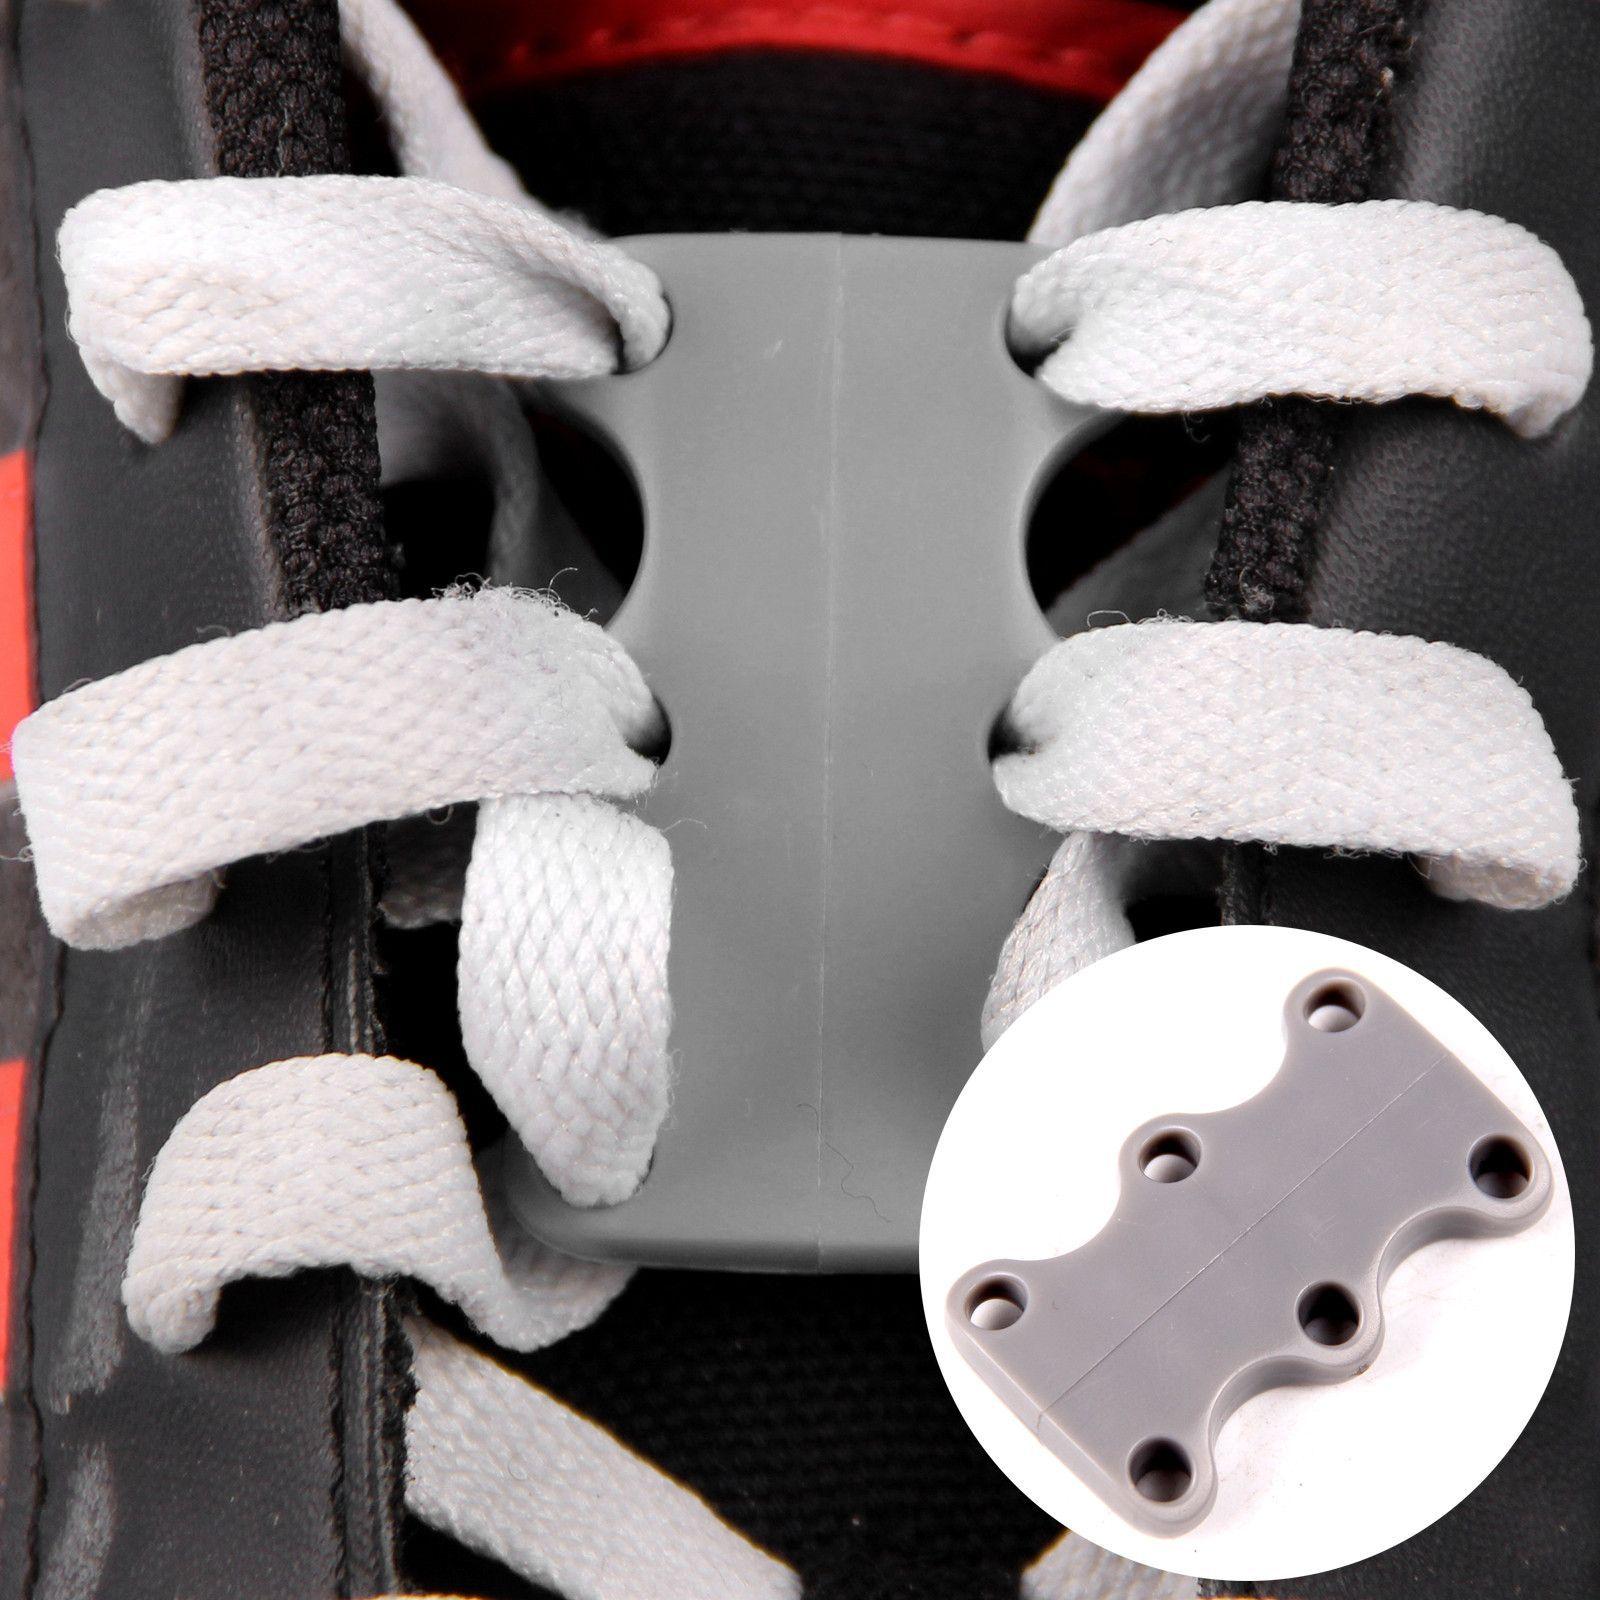 Fast Easy Bind Magnetic No-tie Shoelaces Closures Pair